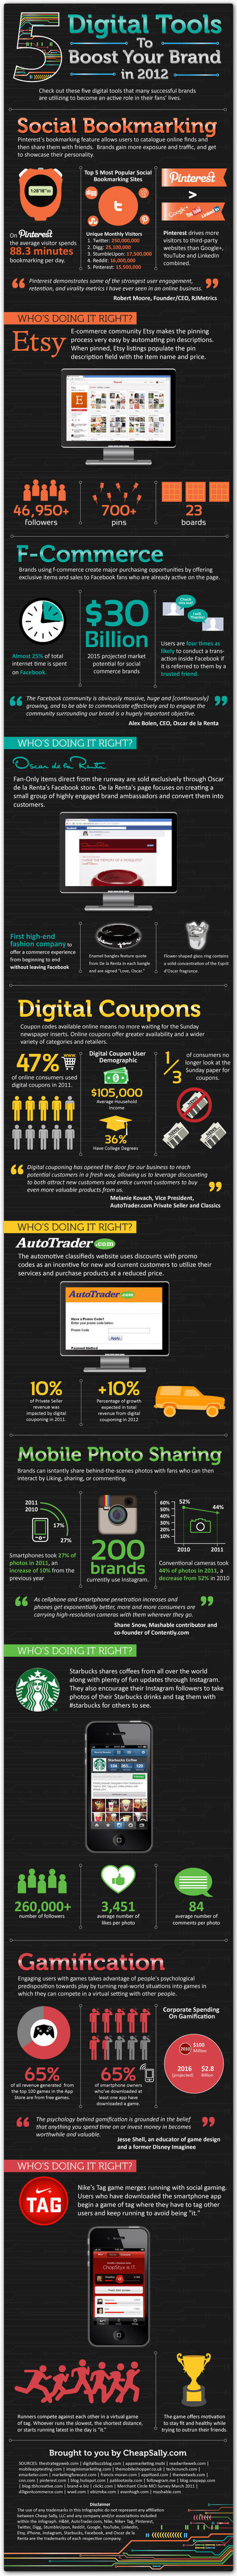 5 Digital Tools to Boost Your Brand in 2012 Infographic | Virtual Options: Social Media for Business | Scoop.it